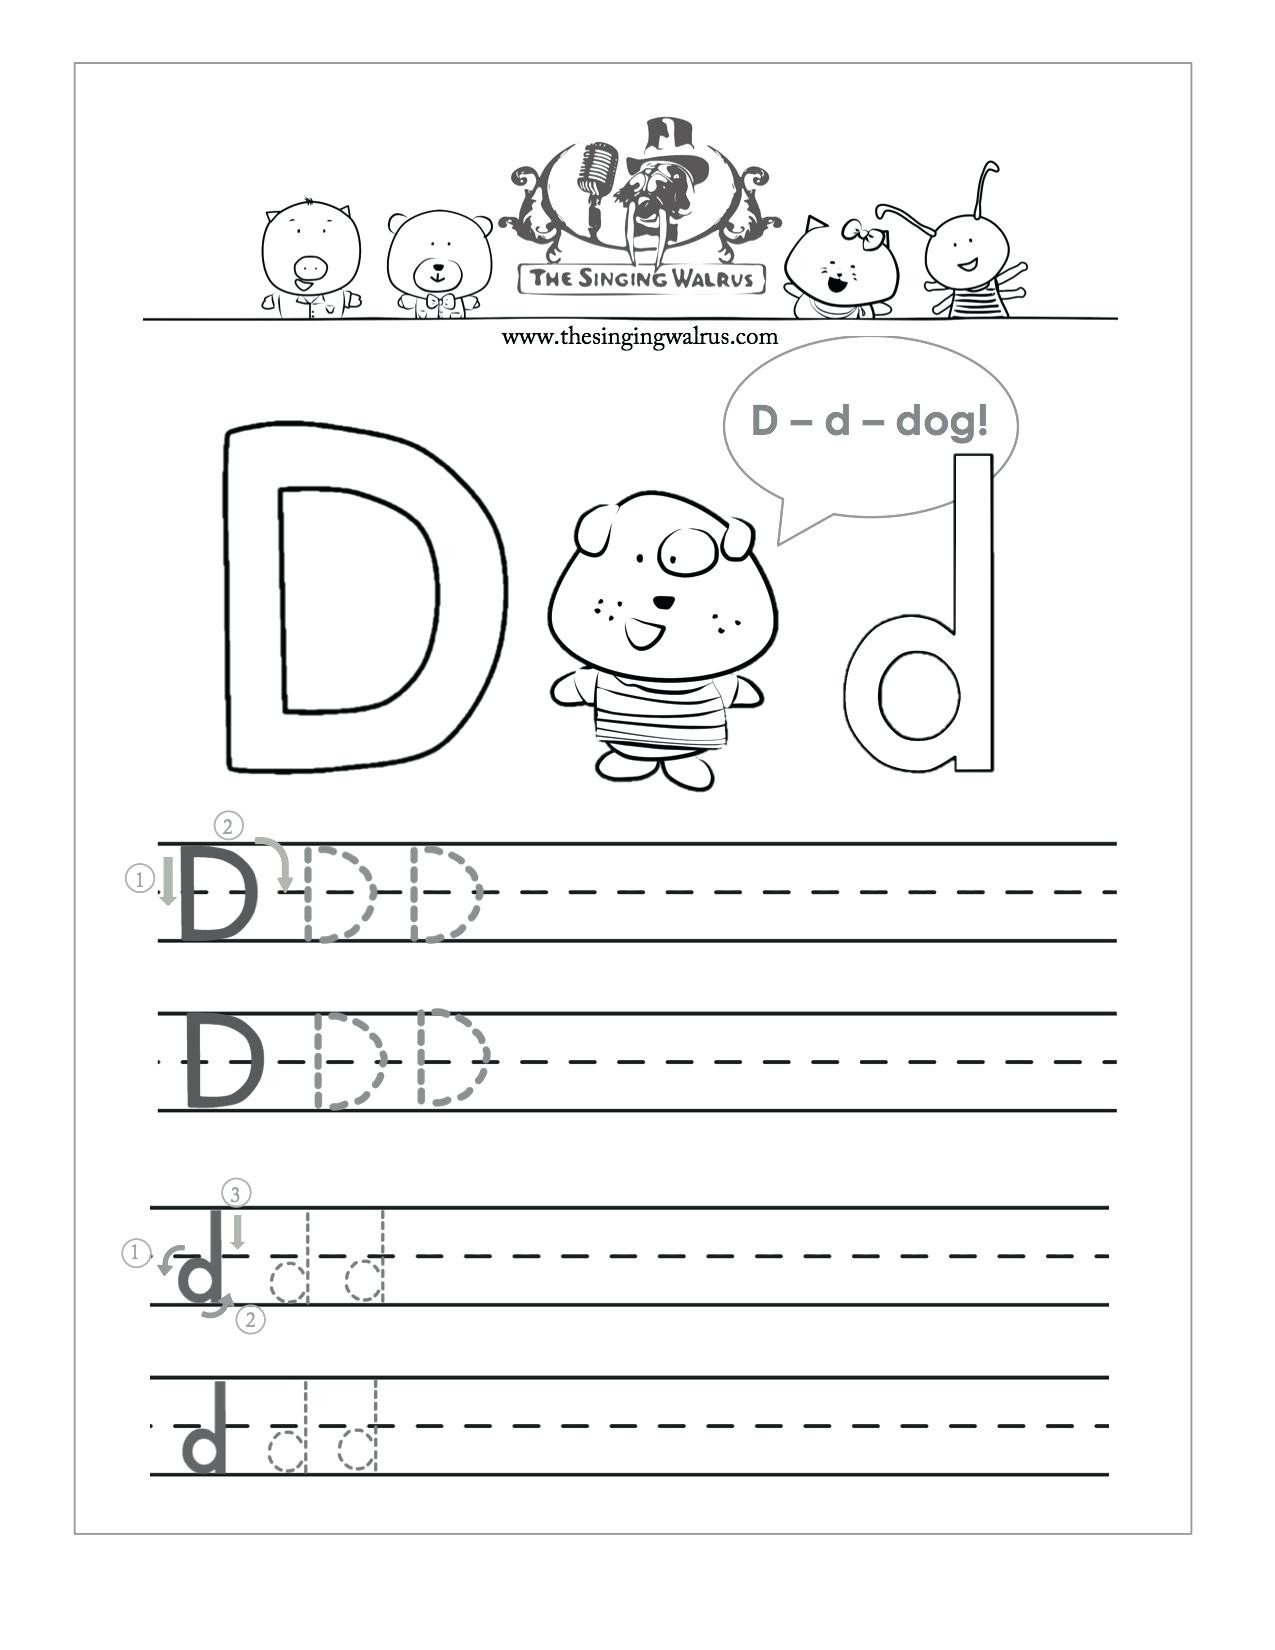 Letter D Worksheet Preschool Letter D Worksheets for Free Download Letter D Worksheets